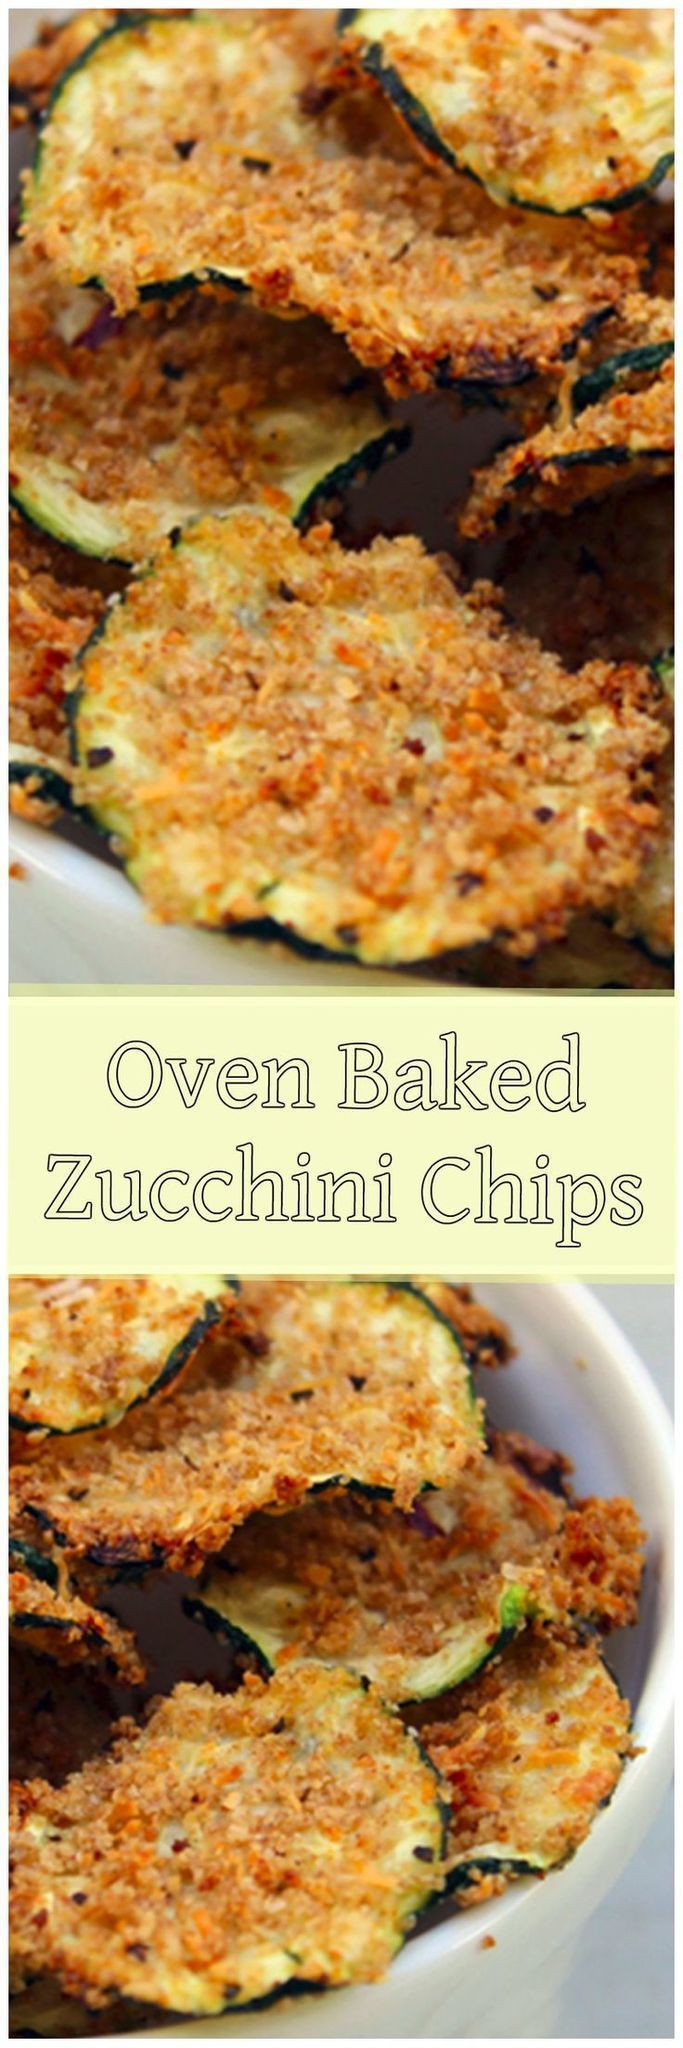 Crunchy chips don't have to be sinful! These zucchini chips satisfy that craving a